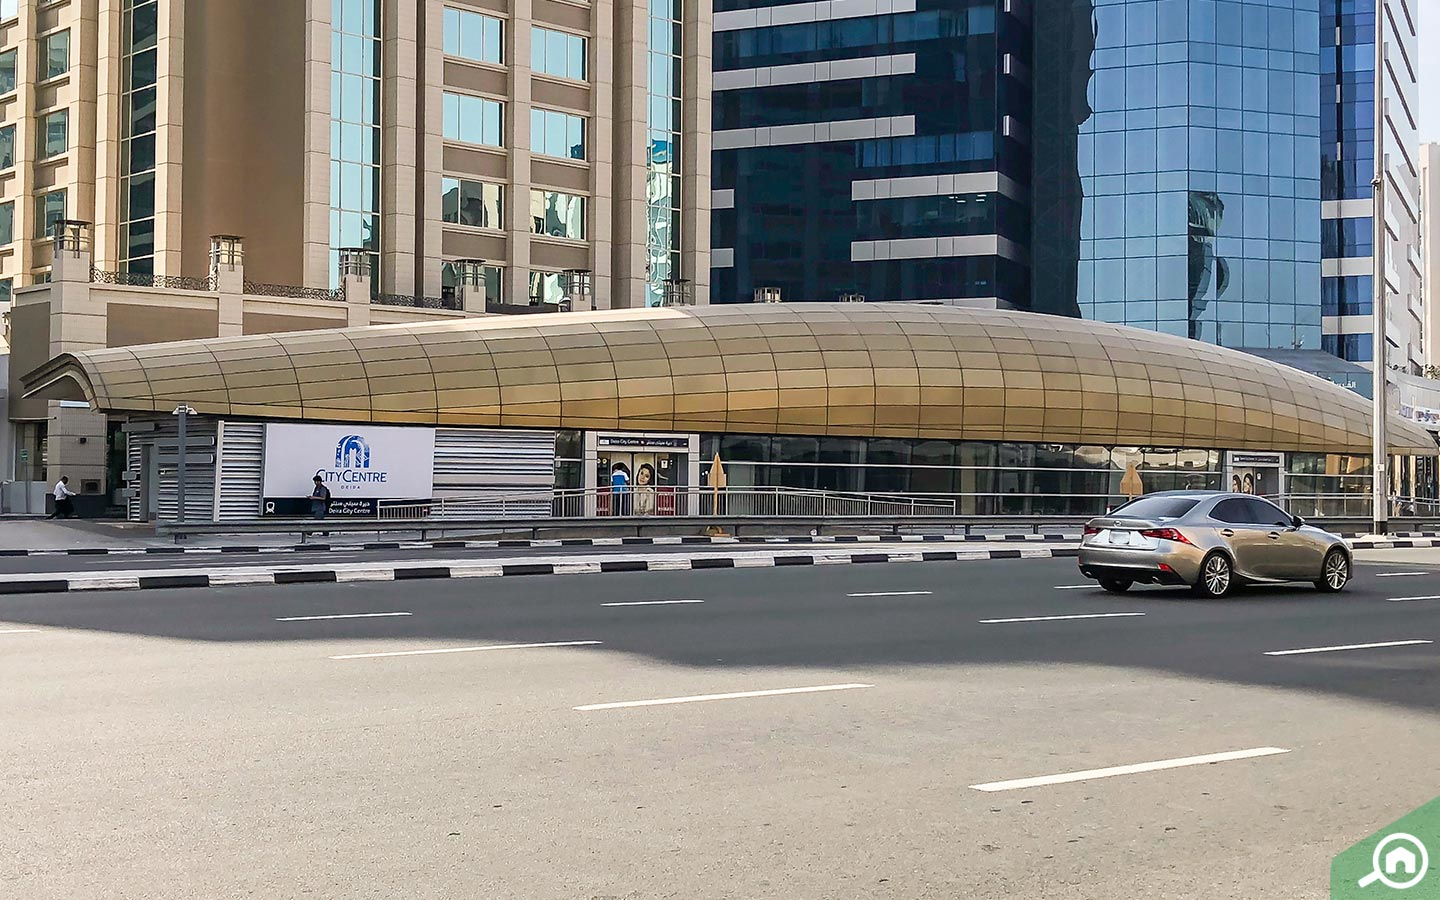 Metro station at Deira City Centre